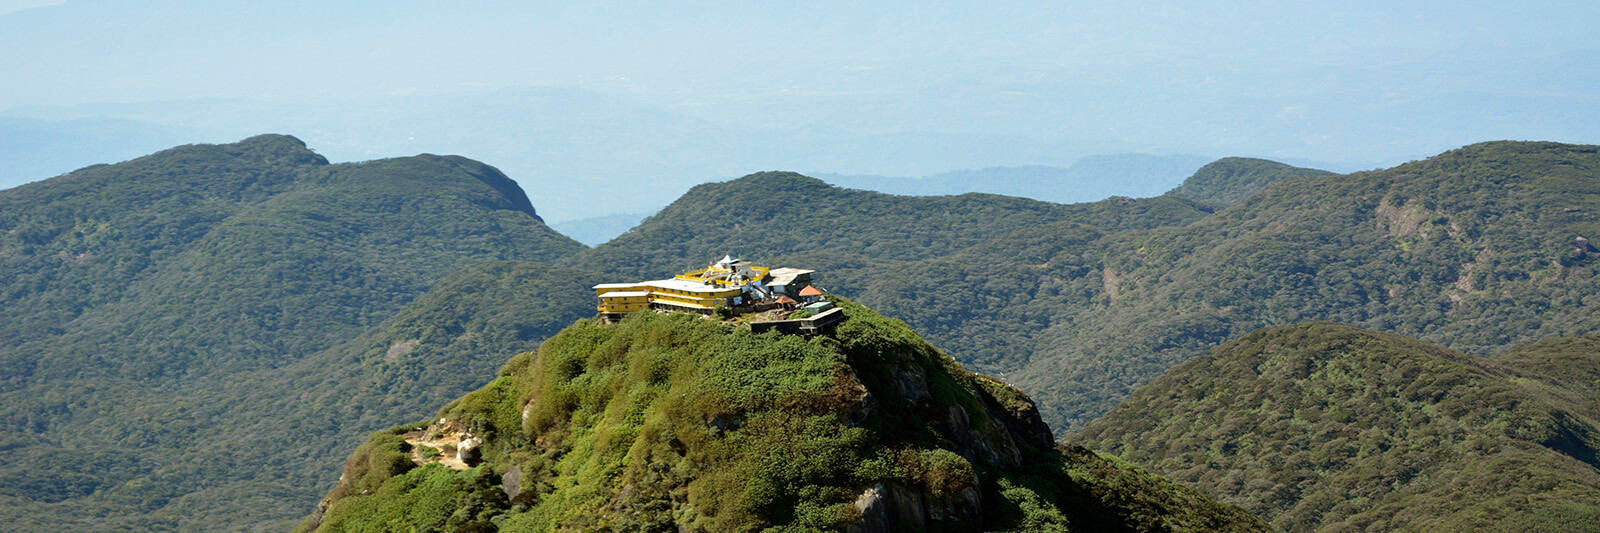 Aerial View of Adam's Peak in Sri Lanka